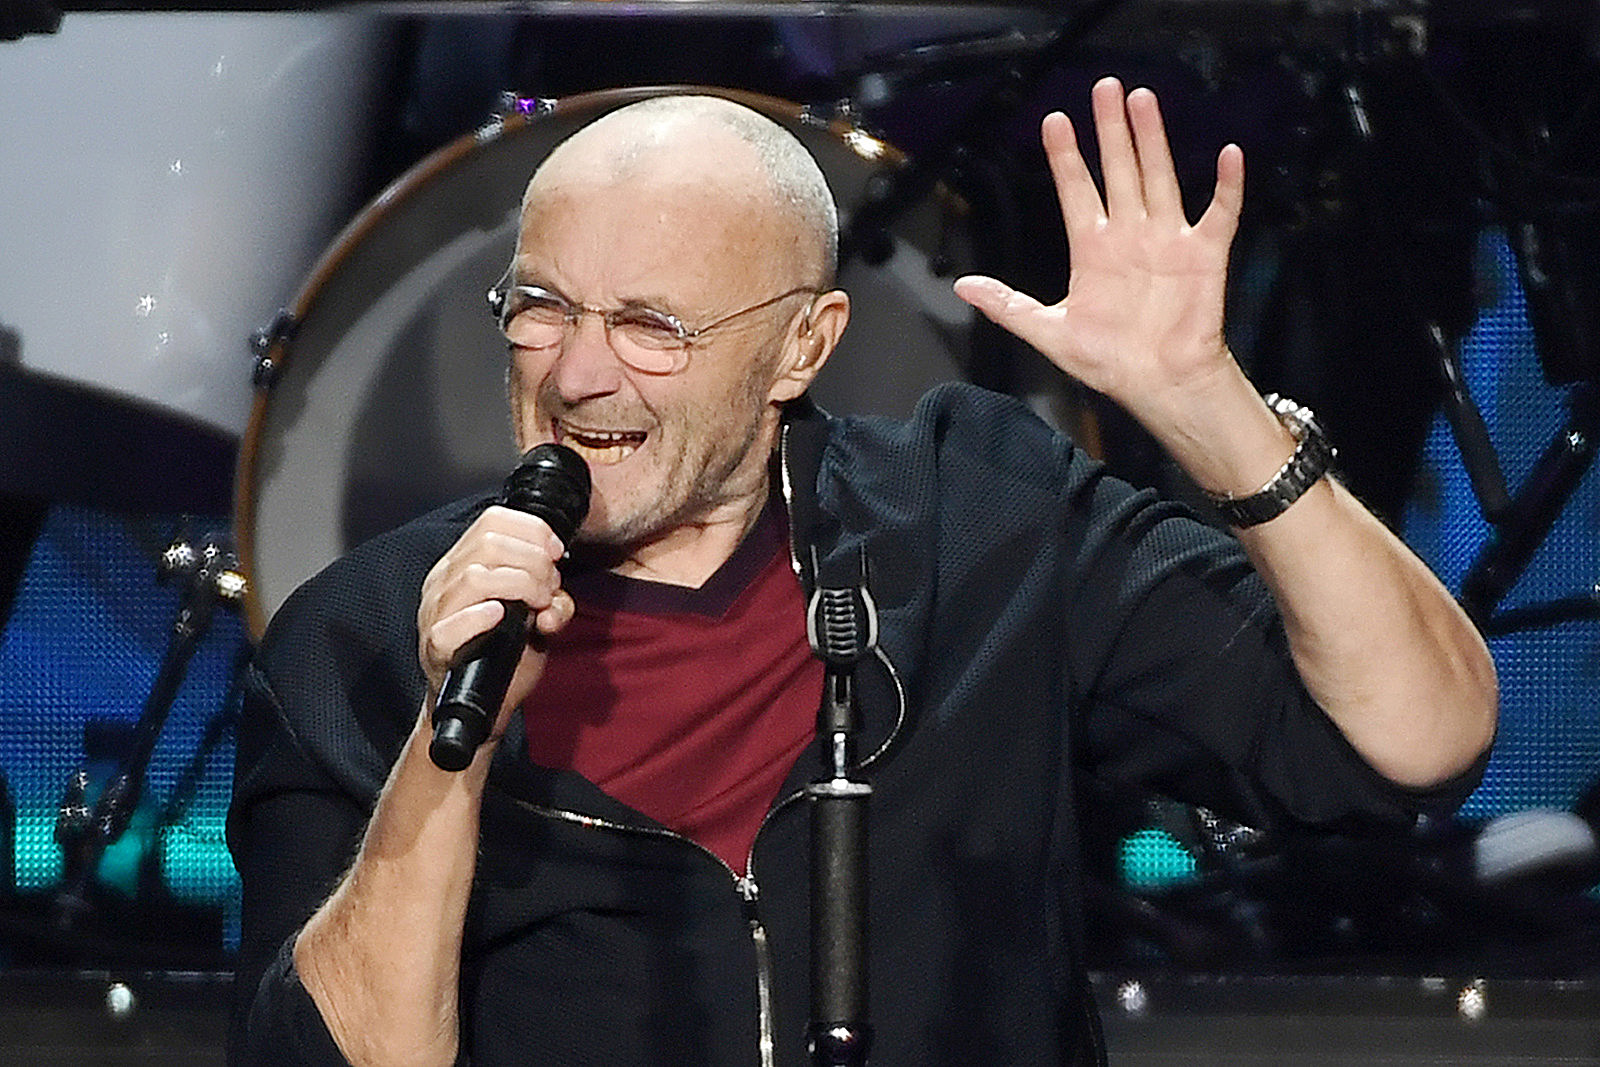 Phil Collins 'Can Barely Hold a Stick' Ahead of Genesis Tour